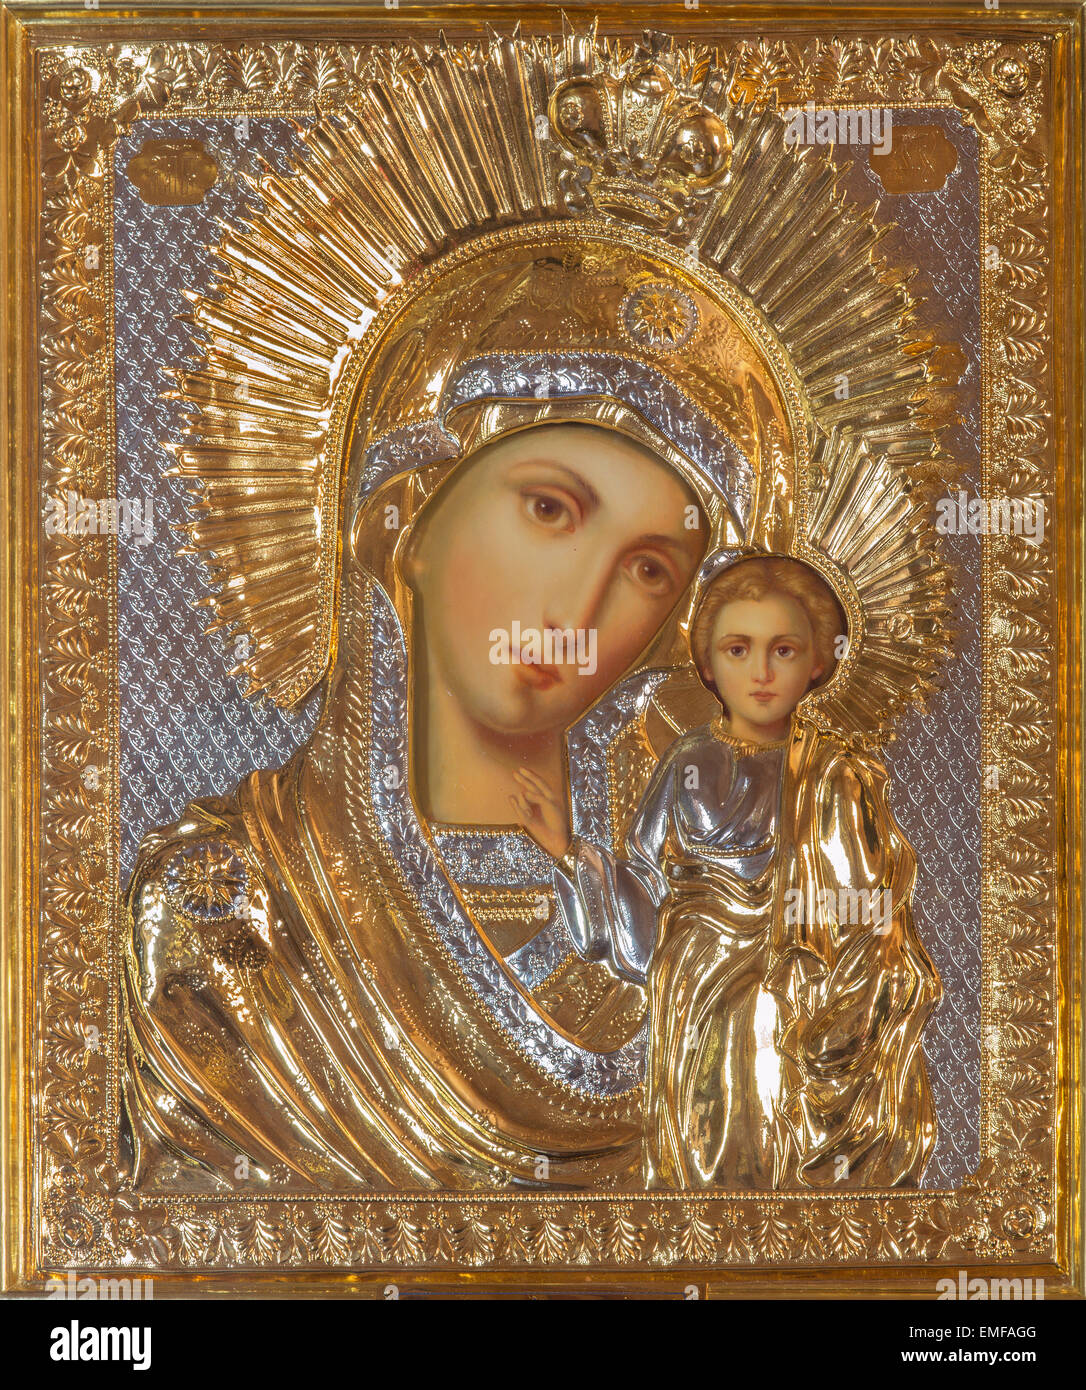 JERUSALEM, ISRAEL - MARCH 5, 2015: The icon of Madonna in Russian orthodox Church of Holy Mary of Magdalene Stock Photo